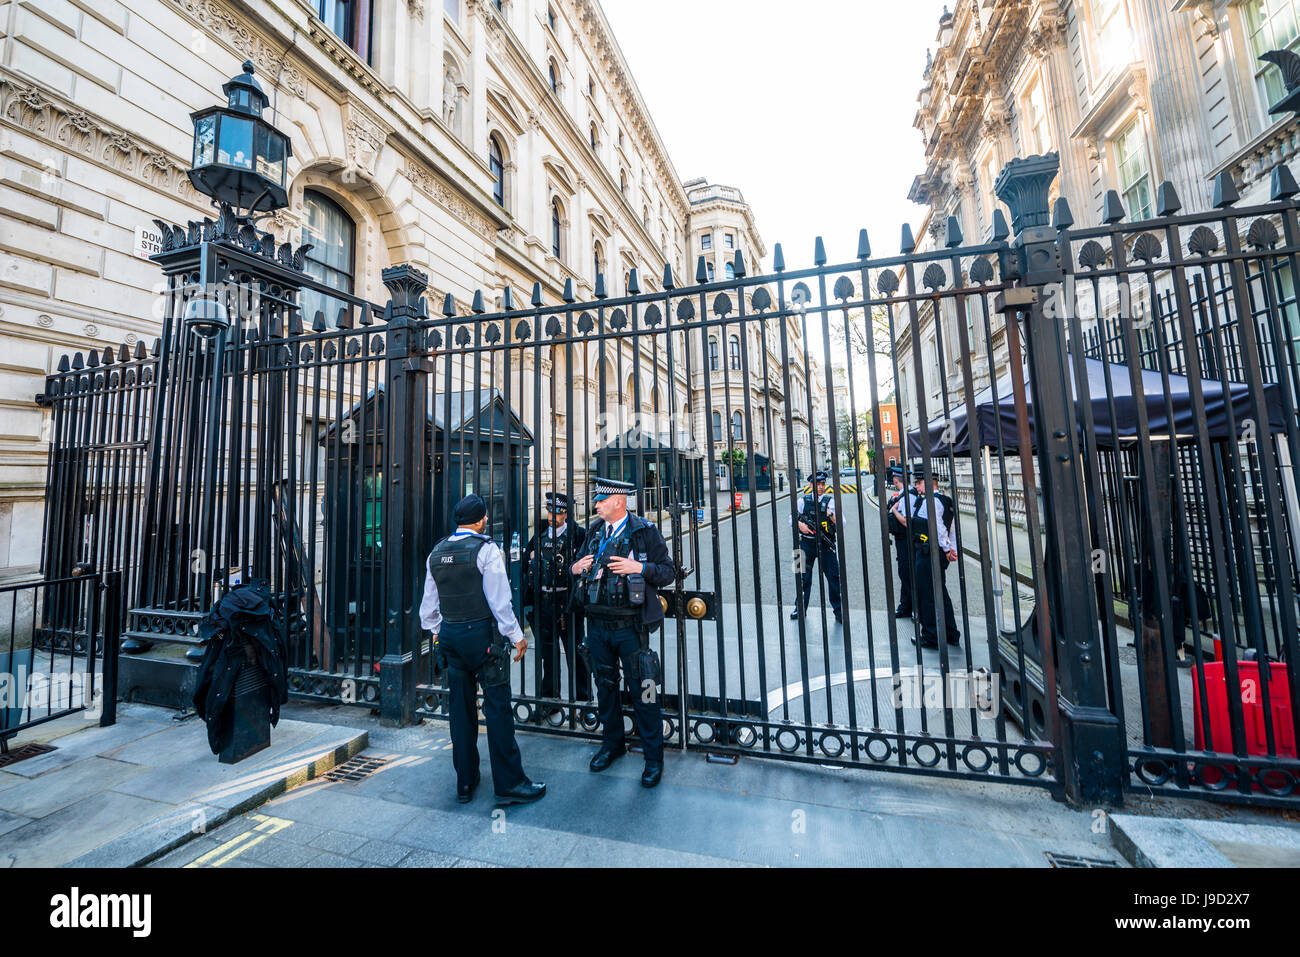 Barricade and police at the entrance to Downing Street, government district, London, England, United Kingdom - Stock Image